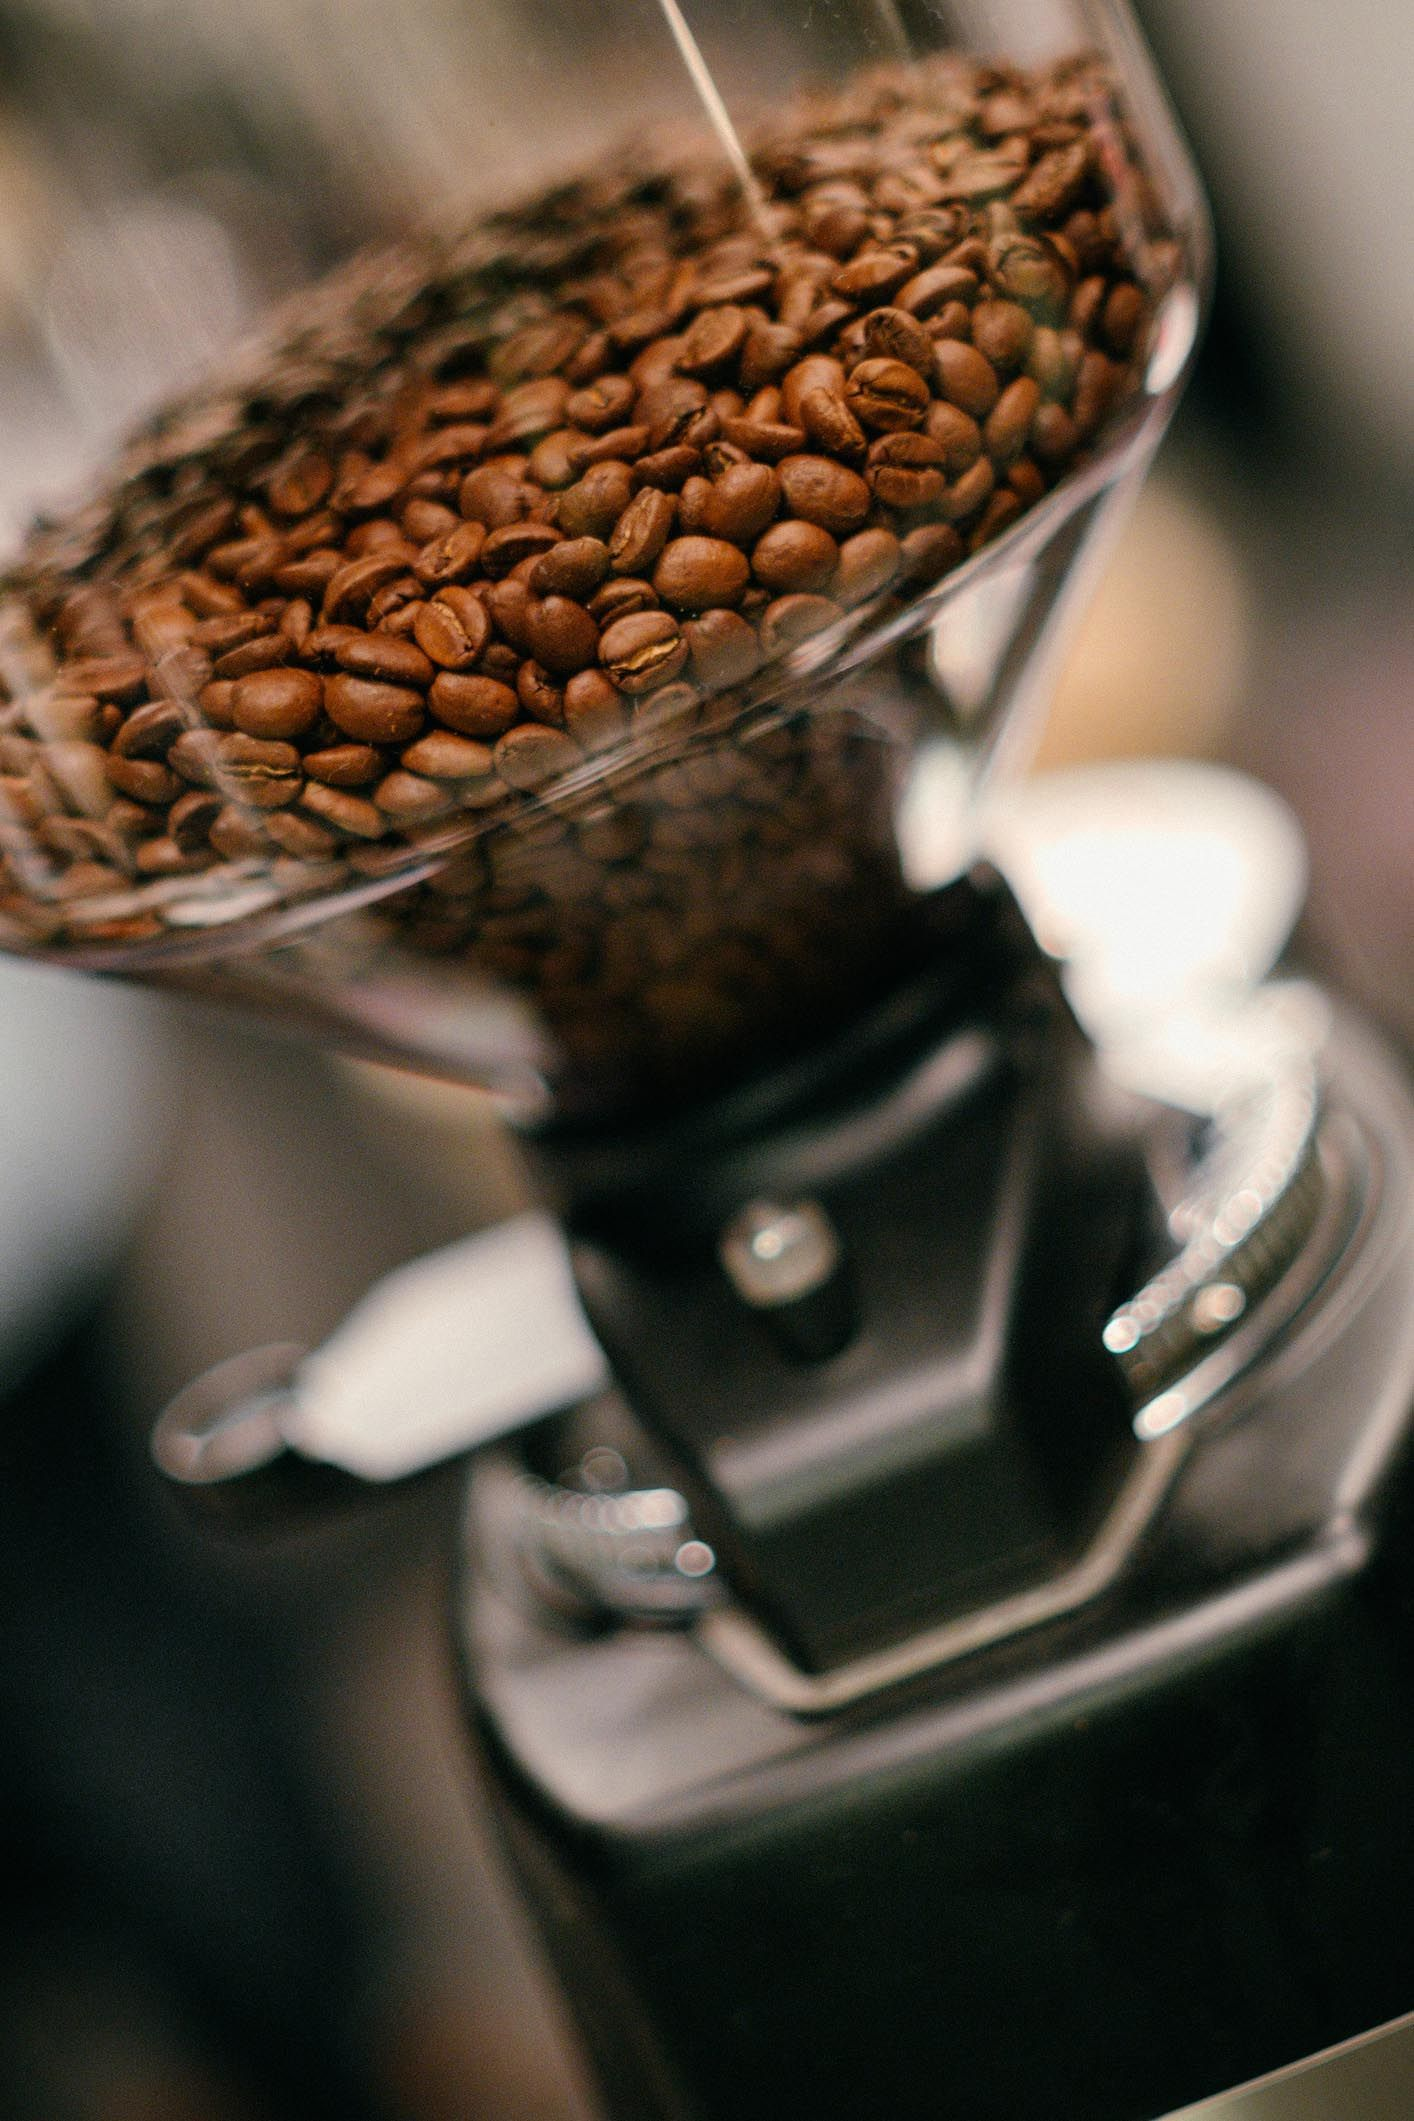 """<p>As tedious as it might be to wash your grinder with soap and water on adaily basis, if you are passionate about your morningcoffee, it's key. 'Coffee bean oils may turn rancid and give fresh coffee an off taste,'says Carolyn Forte, director of the cleaning lab at theGood Housekeeping Institute<span class=""""redactor-invisible-space"""" data-verified=""""redactor"""" data-redactor-tag=""""span"""" data-redactor-class=""""redactor-invisible-space""""></span>.<span class=""""redactor-invisible-space"""" data-verified=""""redactor"""" data-redactor-tag=""""span"""" data-redactor-class=""""redactor-invisible-space""""></span></p>"""